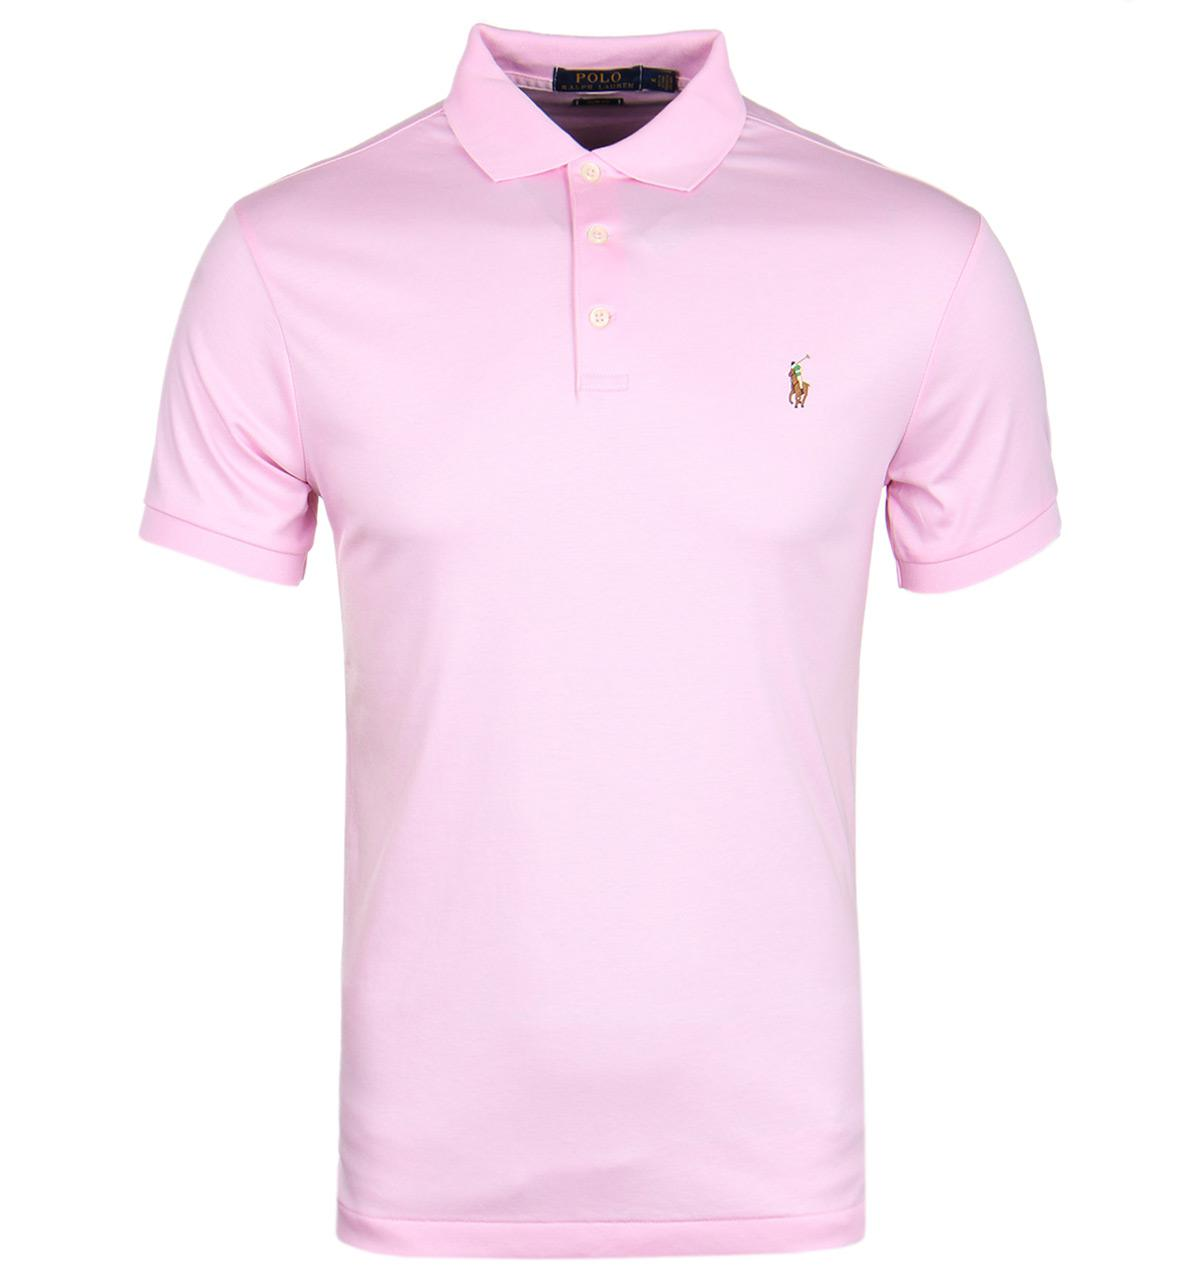 Polo ralph lauren bath pink slim fit polo shirt in pink for Baby pink polo shirt